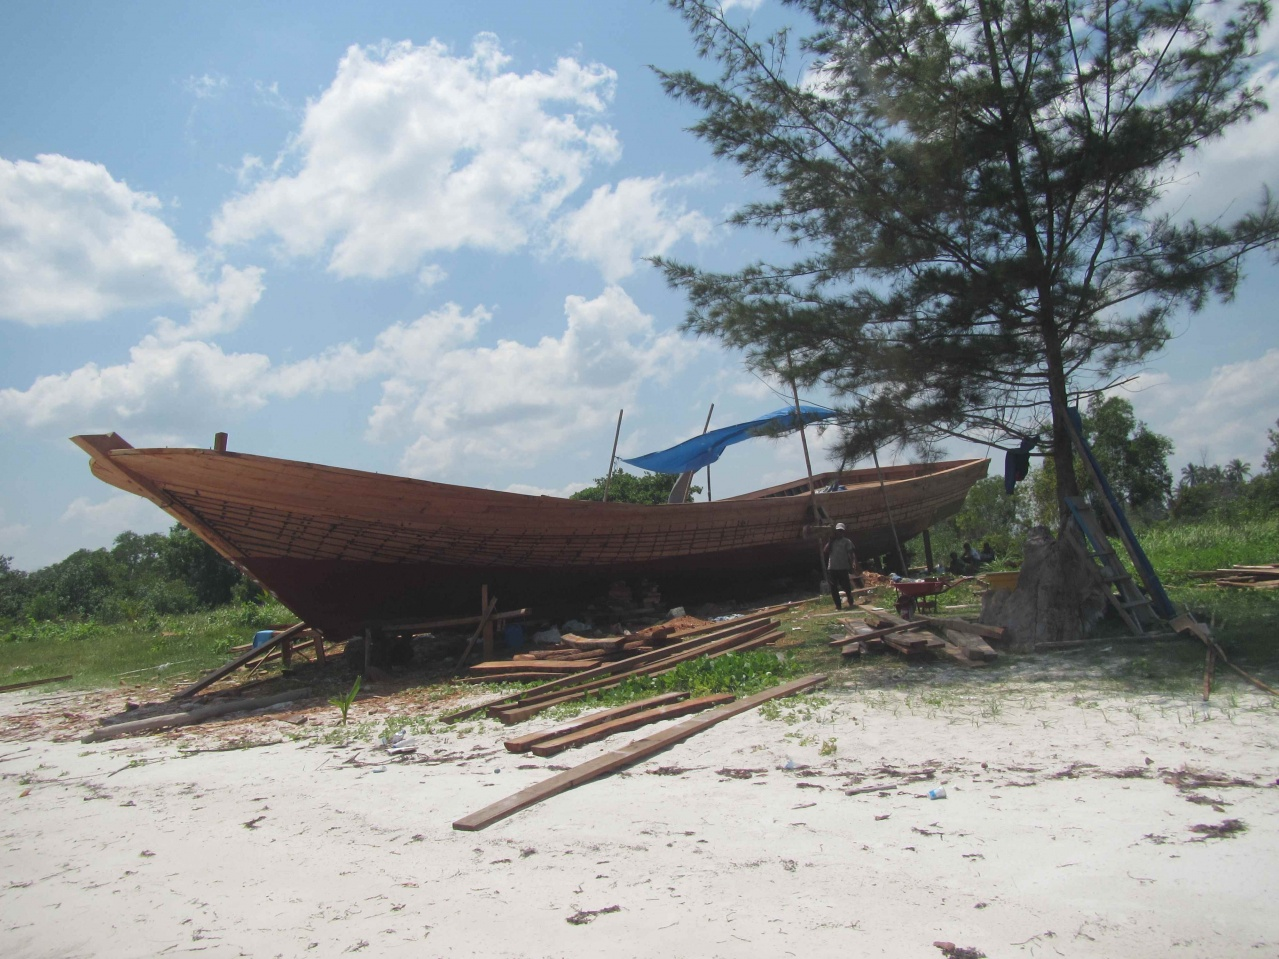 Click image for larger version  Name:Indonesian beach boat construction.jpg Views:46 Size:430.7 KB ID:113689